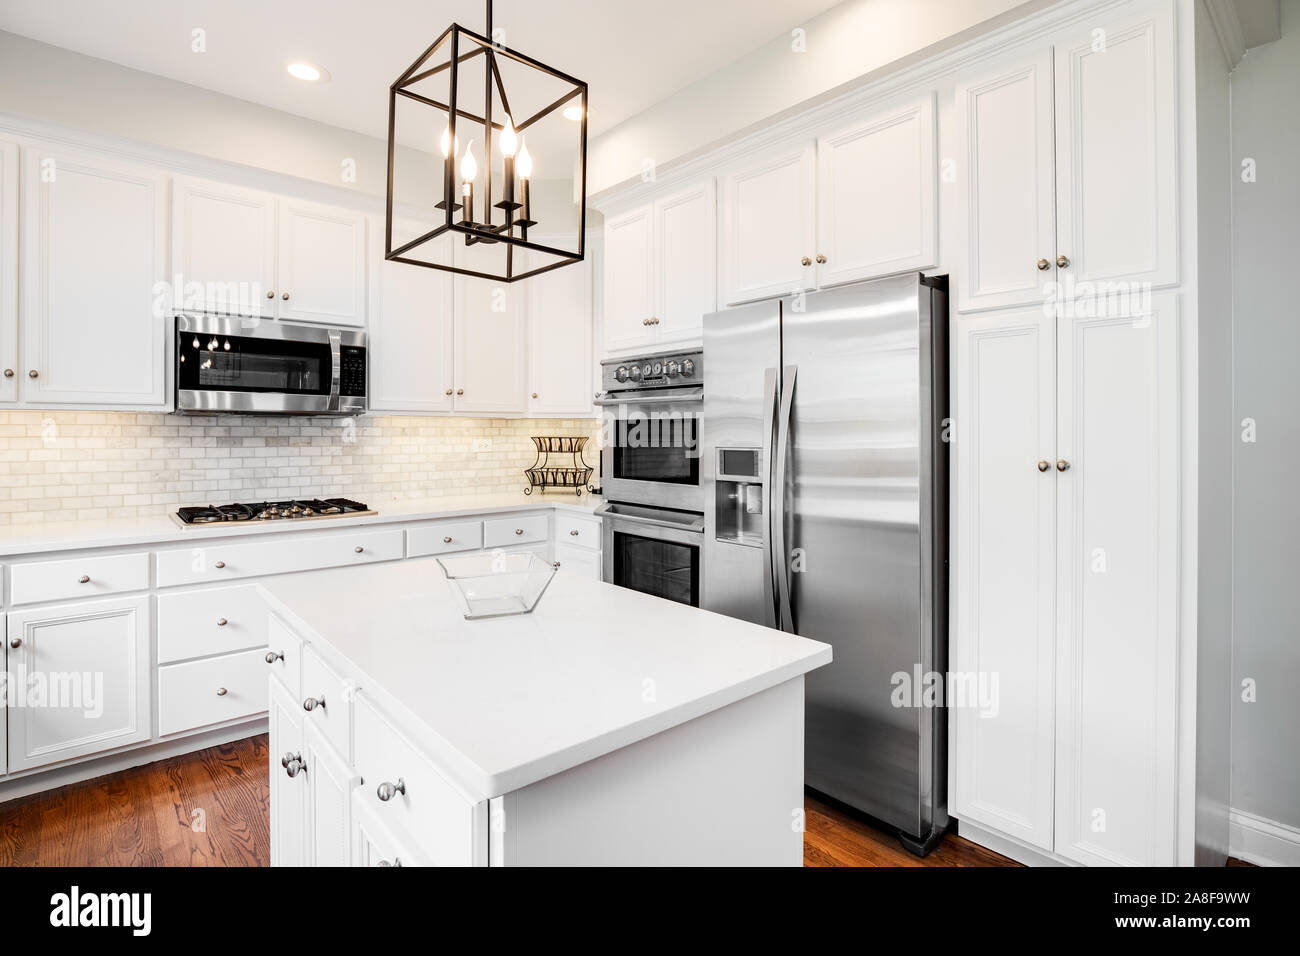 A Bright Kitchen With White Cabinets White Granite Counter Tops Stainless Steel Appliances And Light Fixture Hanging Over The Island Stock Photo Alamy,Small Town Definition